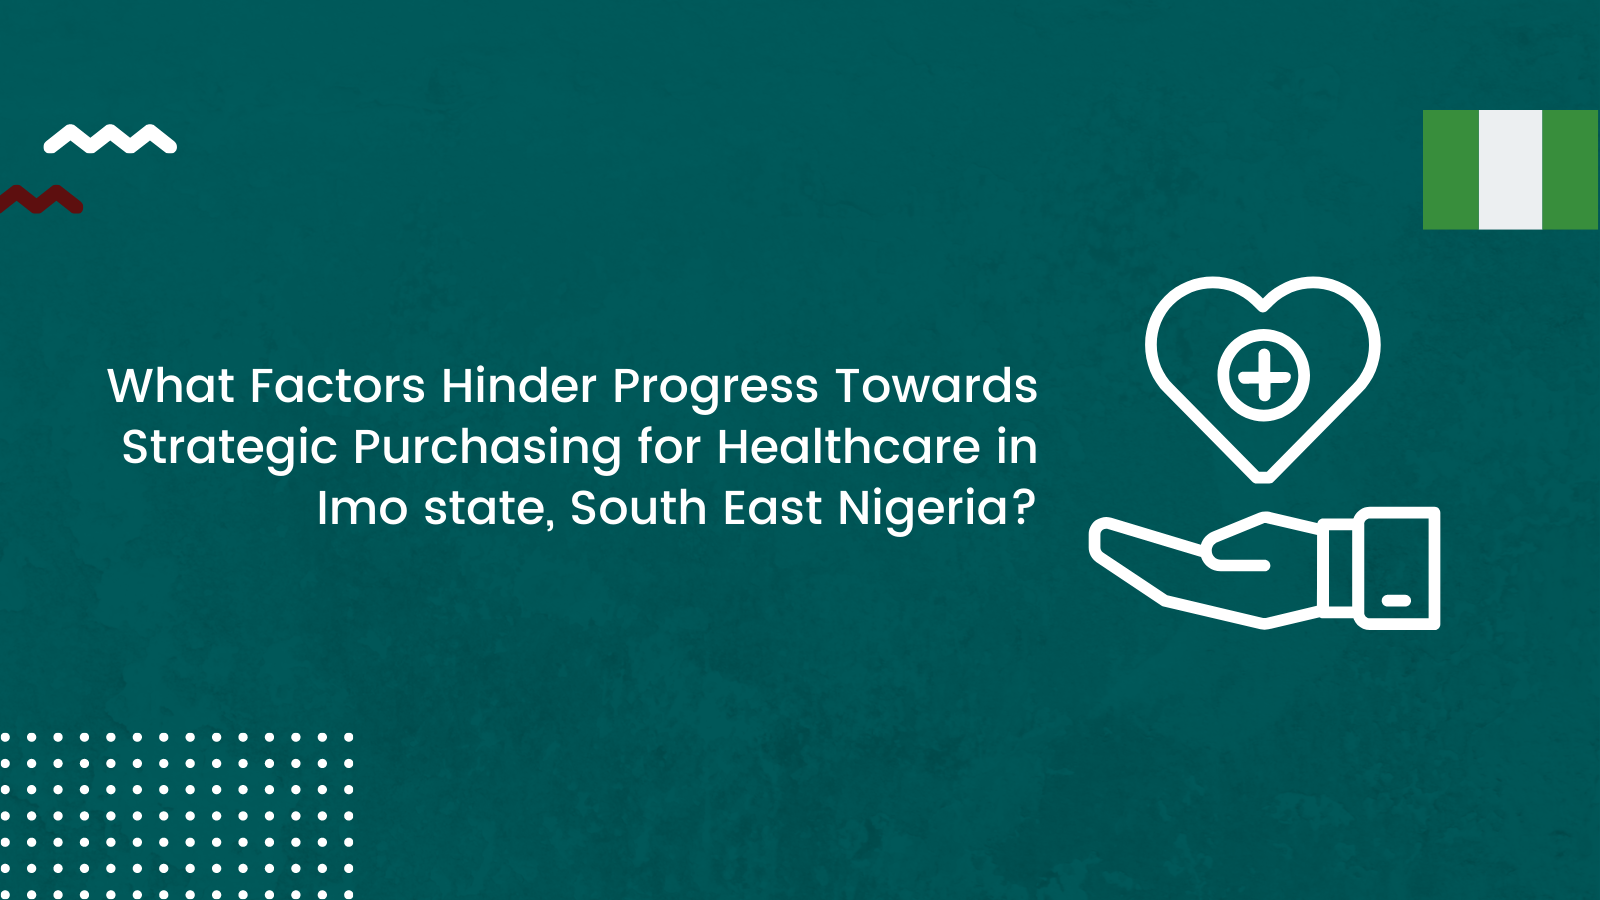 What Factors Hinder Progress Towards Strategic Purchasing for Healthcare in Imo state, South East Nigeria?